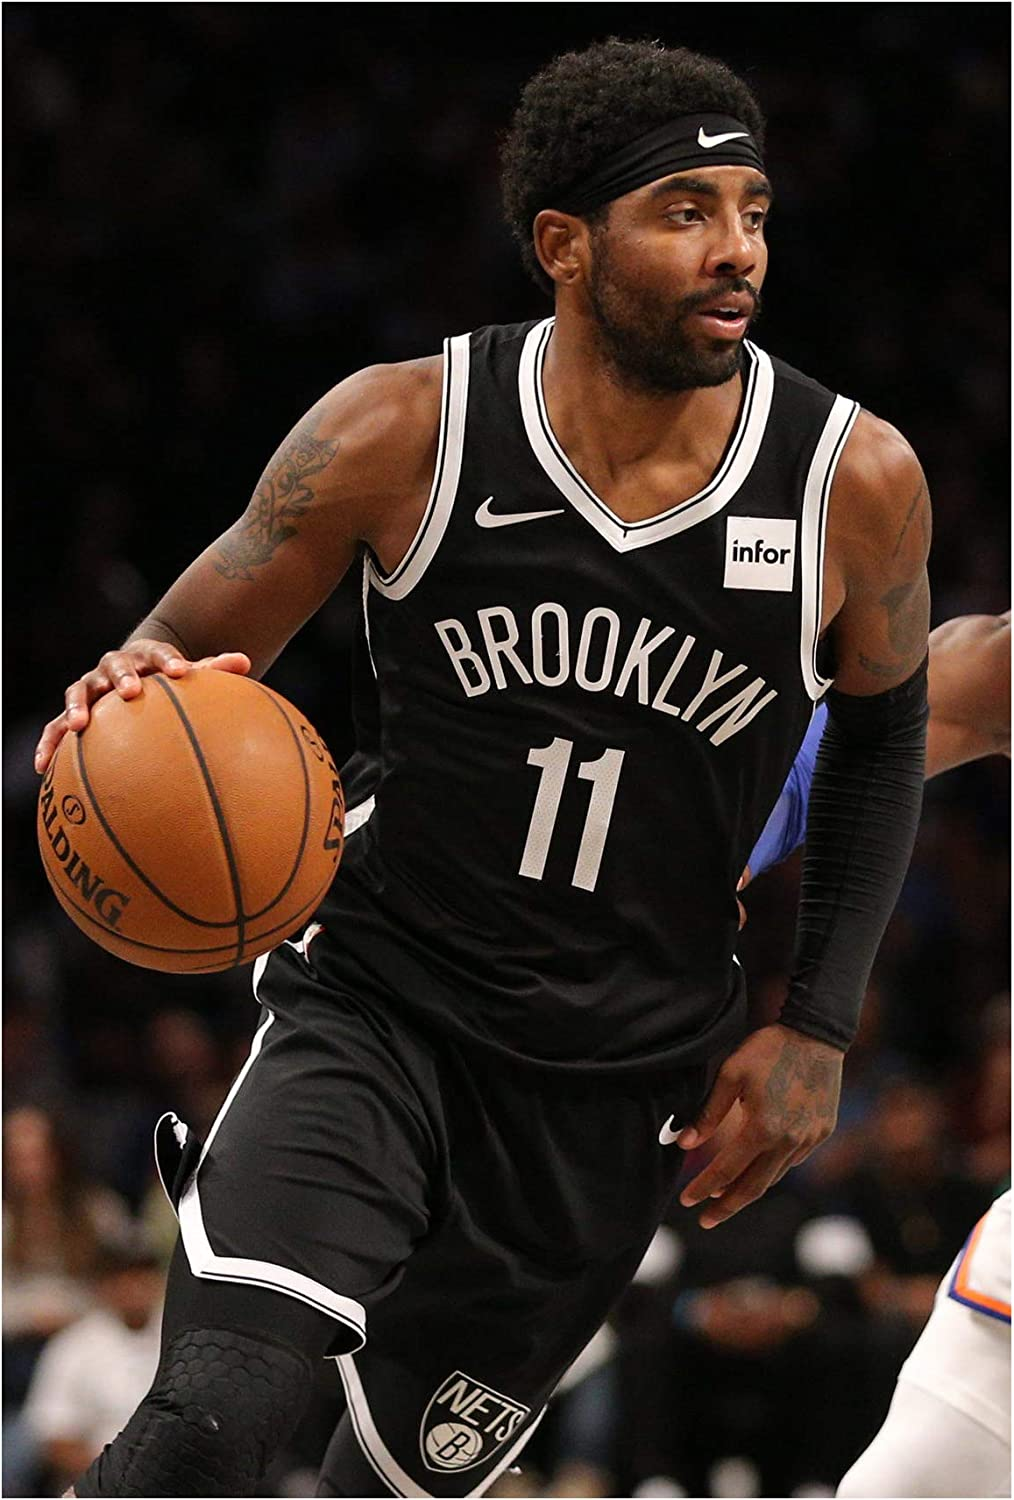 Amazon.com: Fullfillment Posters Kyrie Irving Poster Brooklyn Nets Glossy  Print Photo Wall Art Limited Celebrity Sports Athlete NBA Basketball Sizes  8x10 11x17 16x20 22x28 24x36 27x40#1 (27x40 inches): Posters & Prints